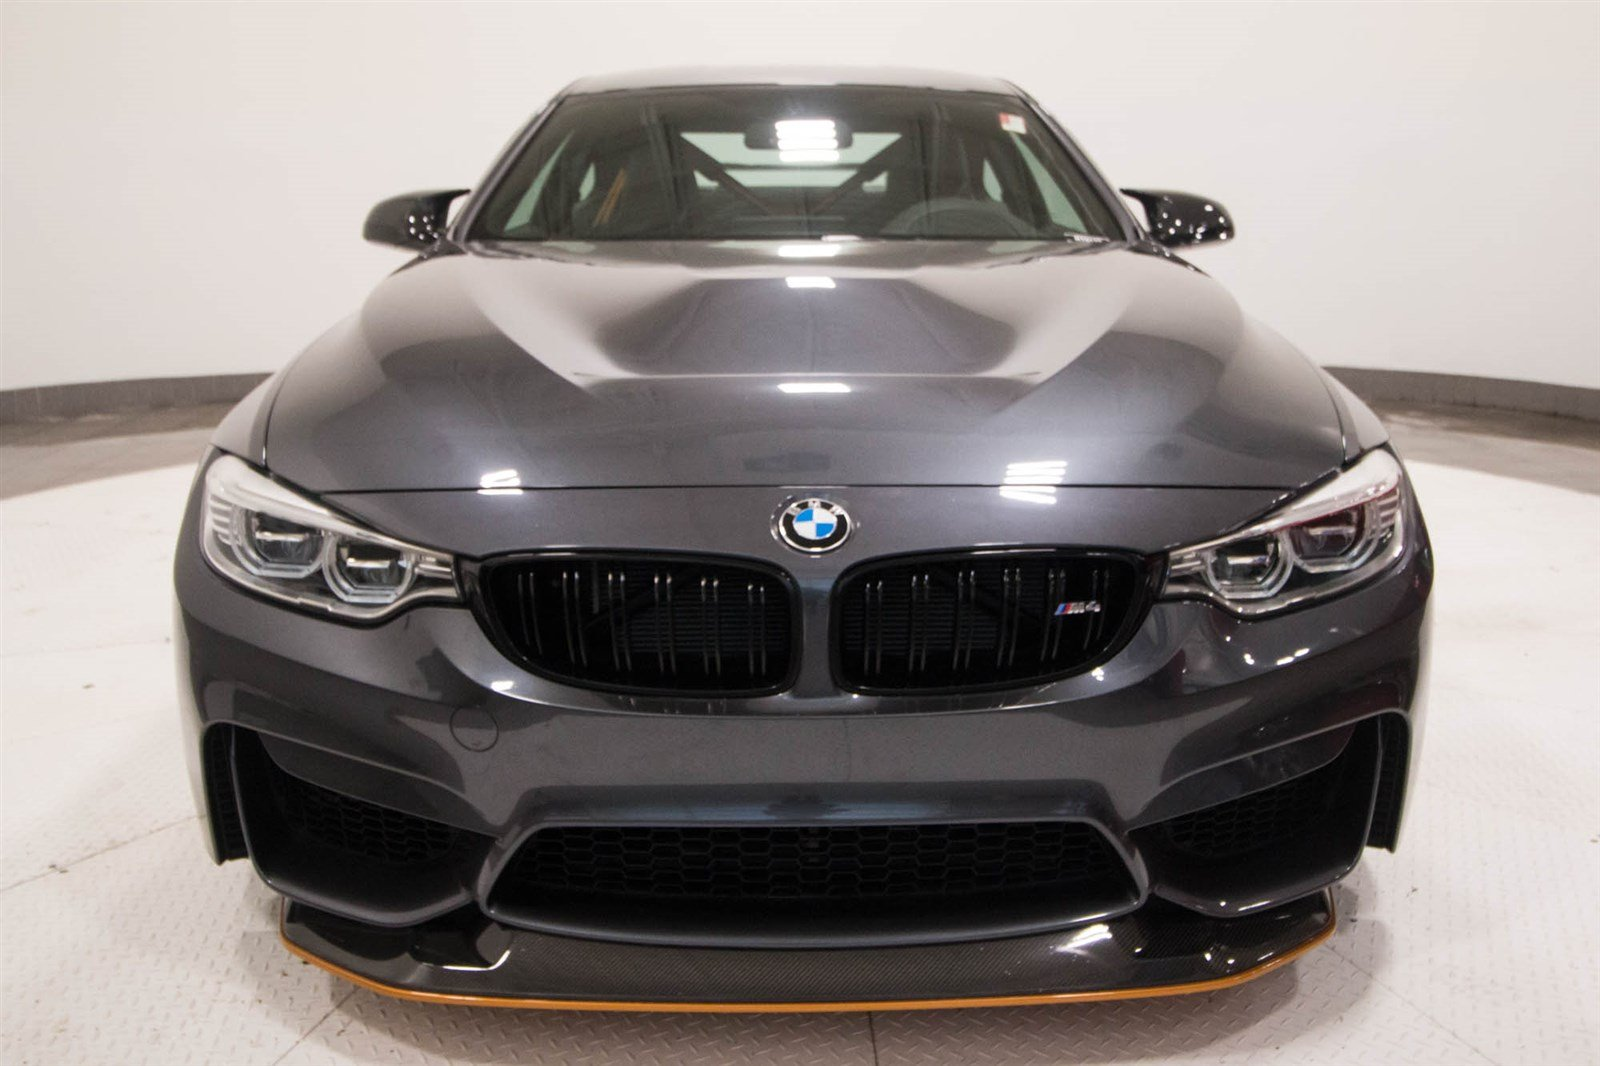 pre owned 2016 bmw m4 gts 2dr car in fort mitchell rt0137 mercedes benz of fort mitchell. Black Bedroom Furniture Sets. Home Design Ideas